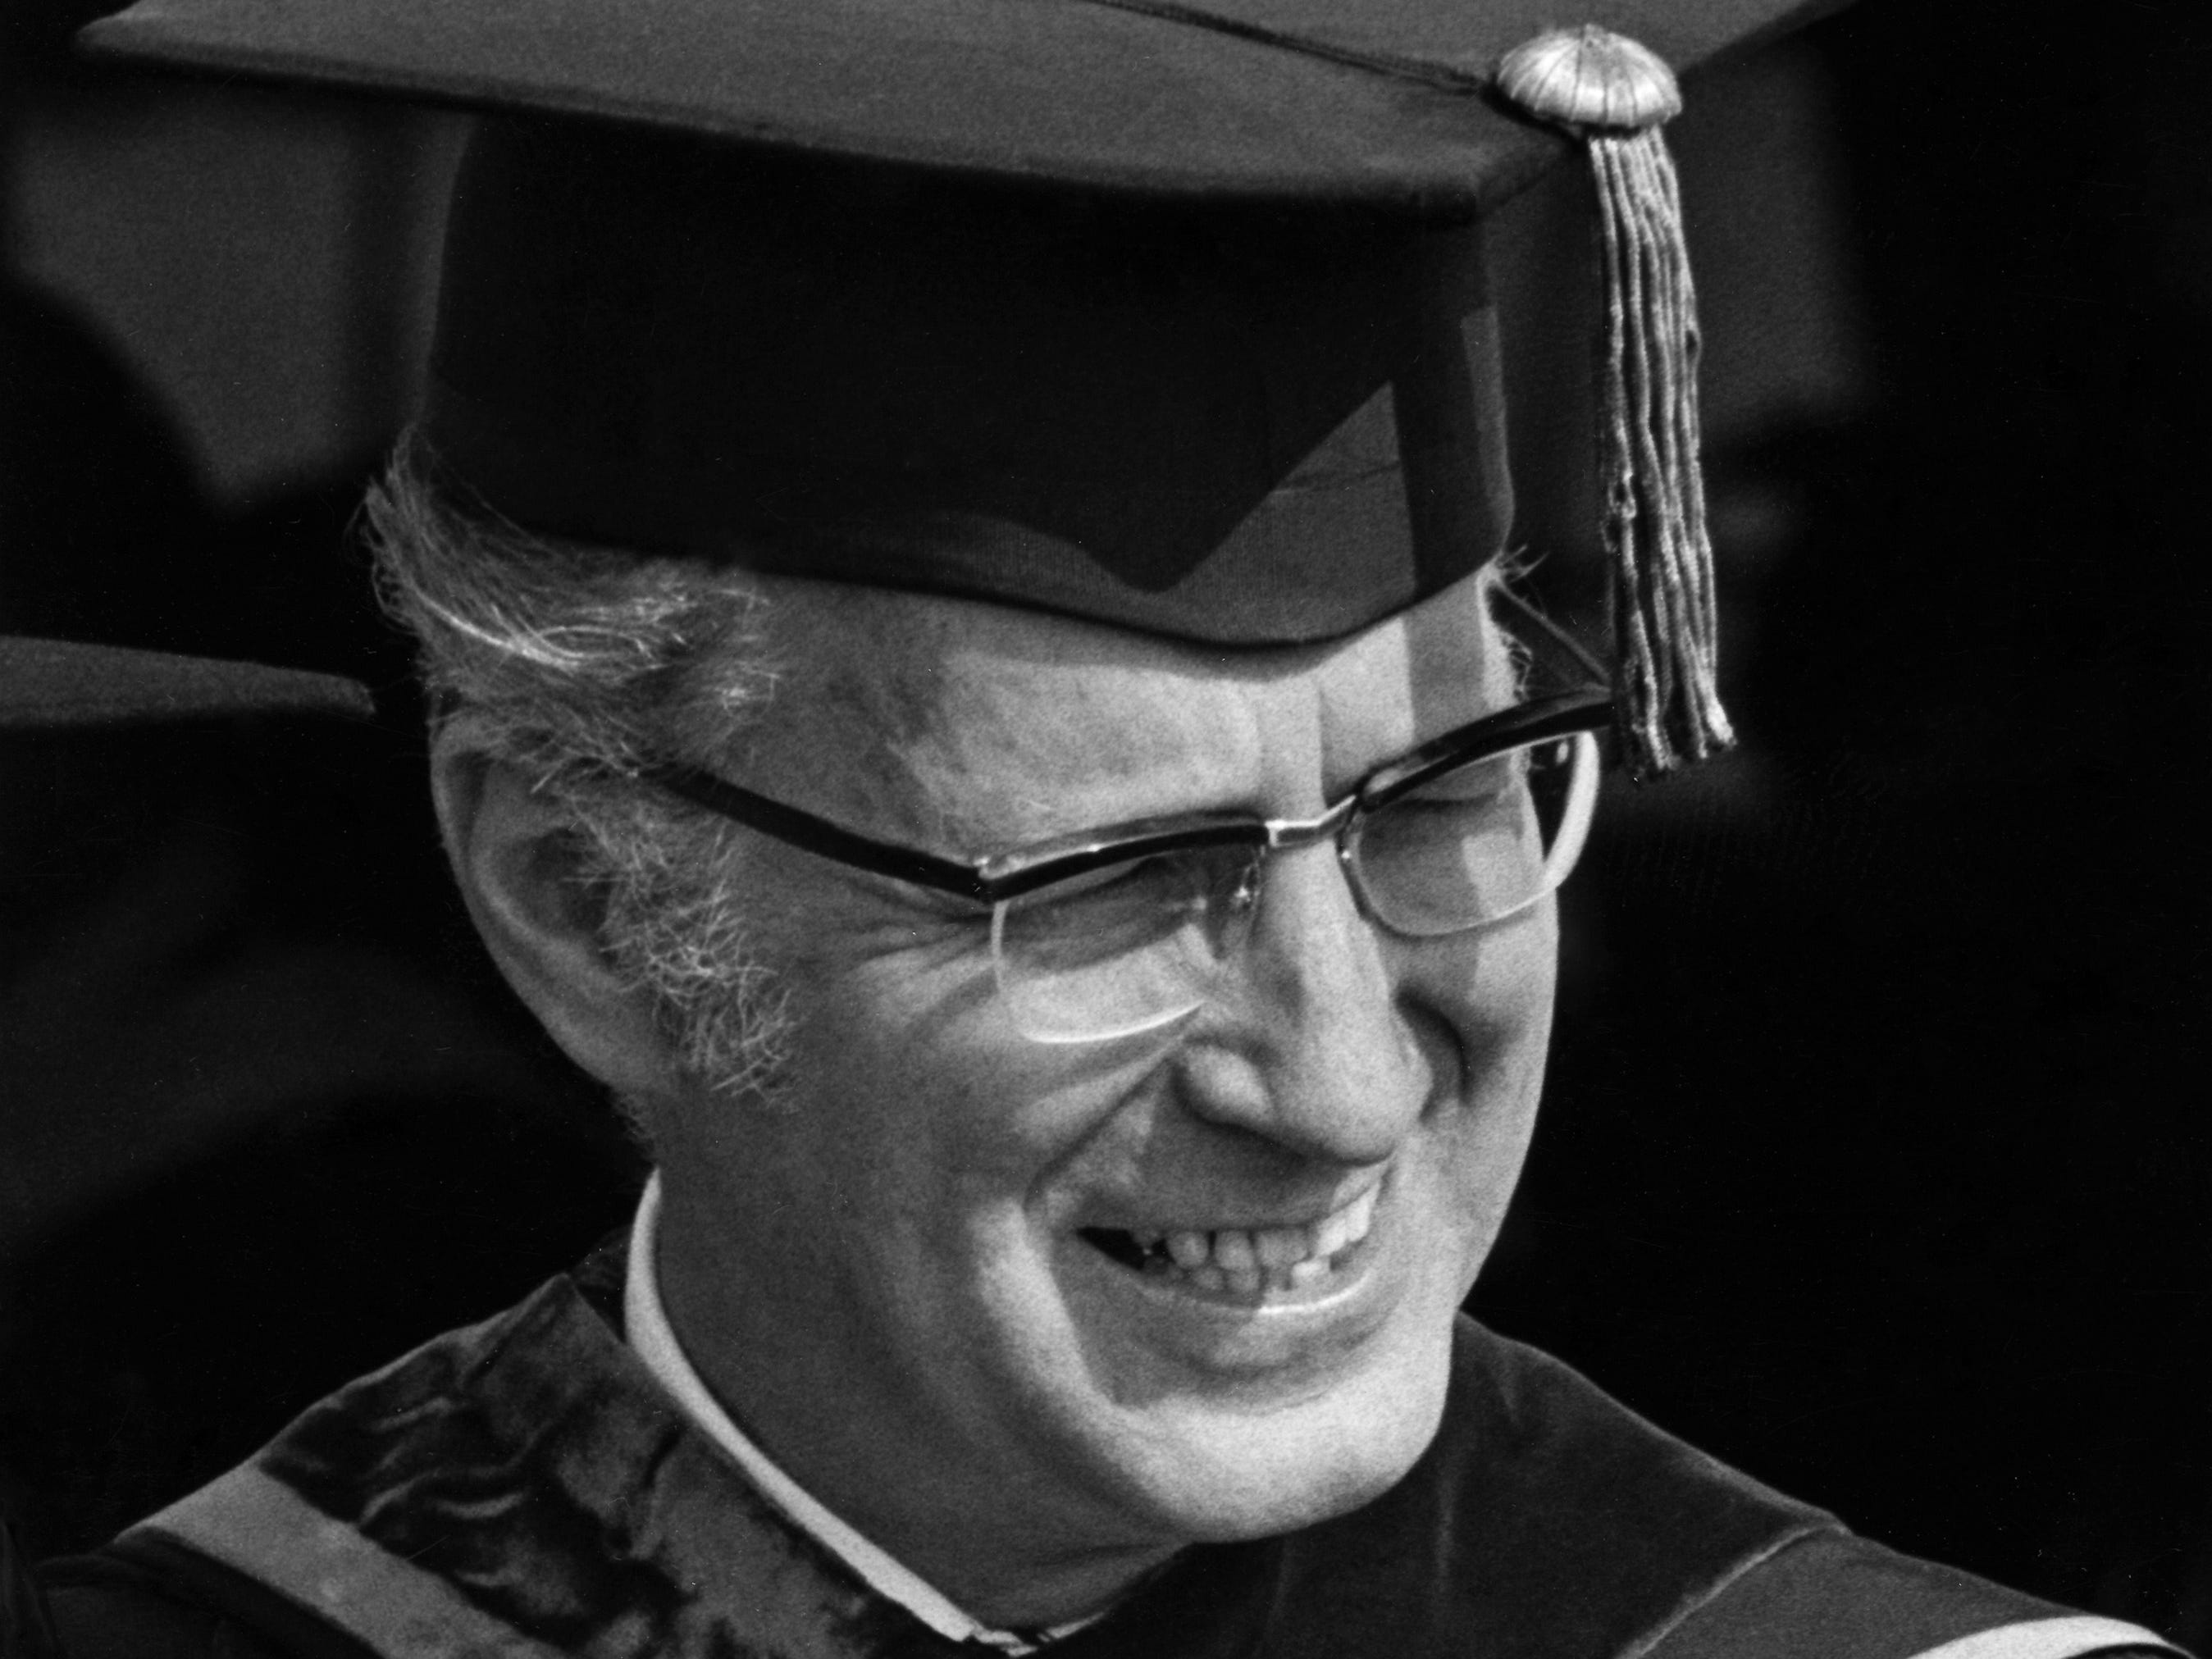 Dr. Glenn A. Olds in academic regalia while serving as president of Kent State University. He became president in the aftermath of the Ohio National Guard shooting and killing four students protesting the Vietnam War in 1970.